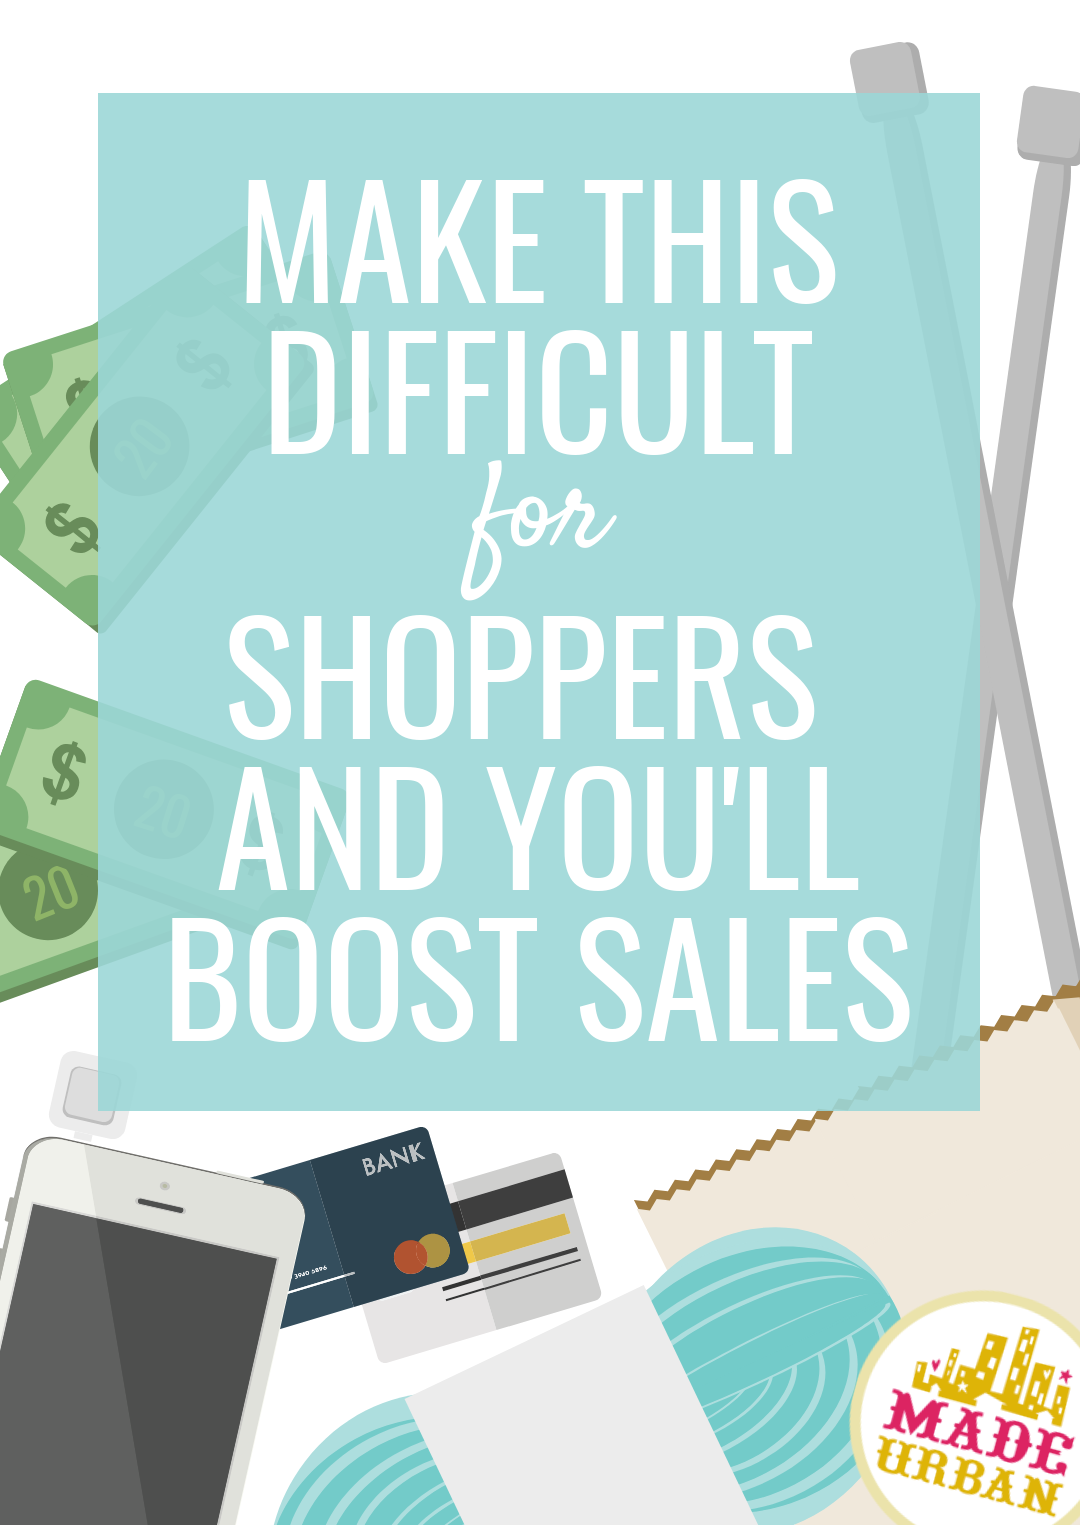 In most cases, you should be making things easier for shoppers, however, there is one step you should make more difficult. Do so and you'll see a boost in sales. Find out what it is...